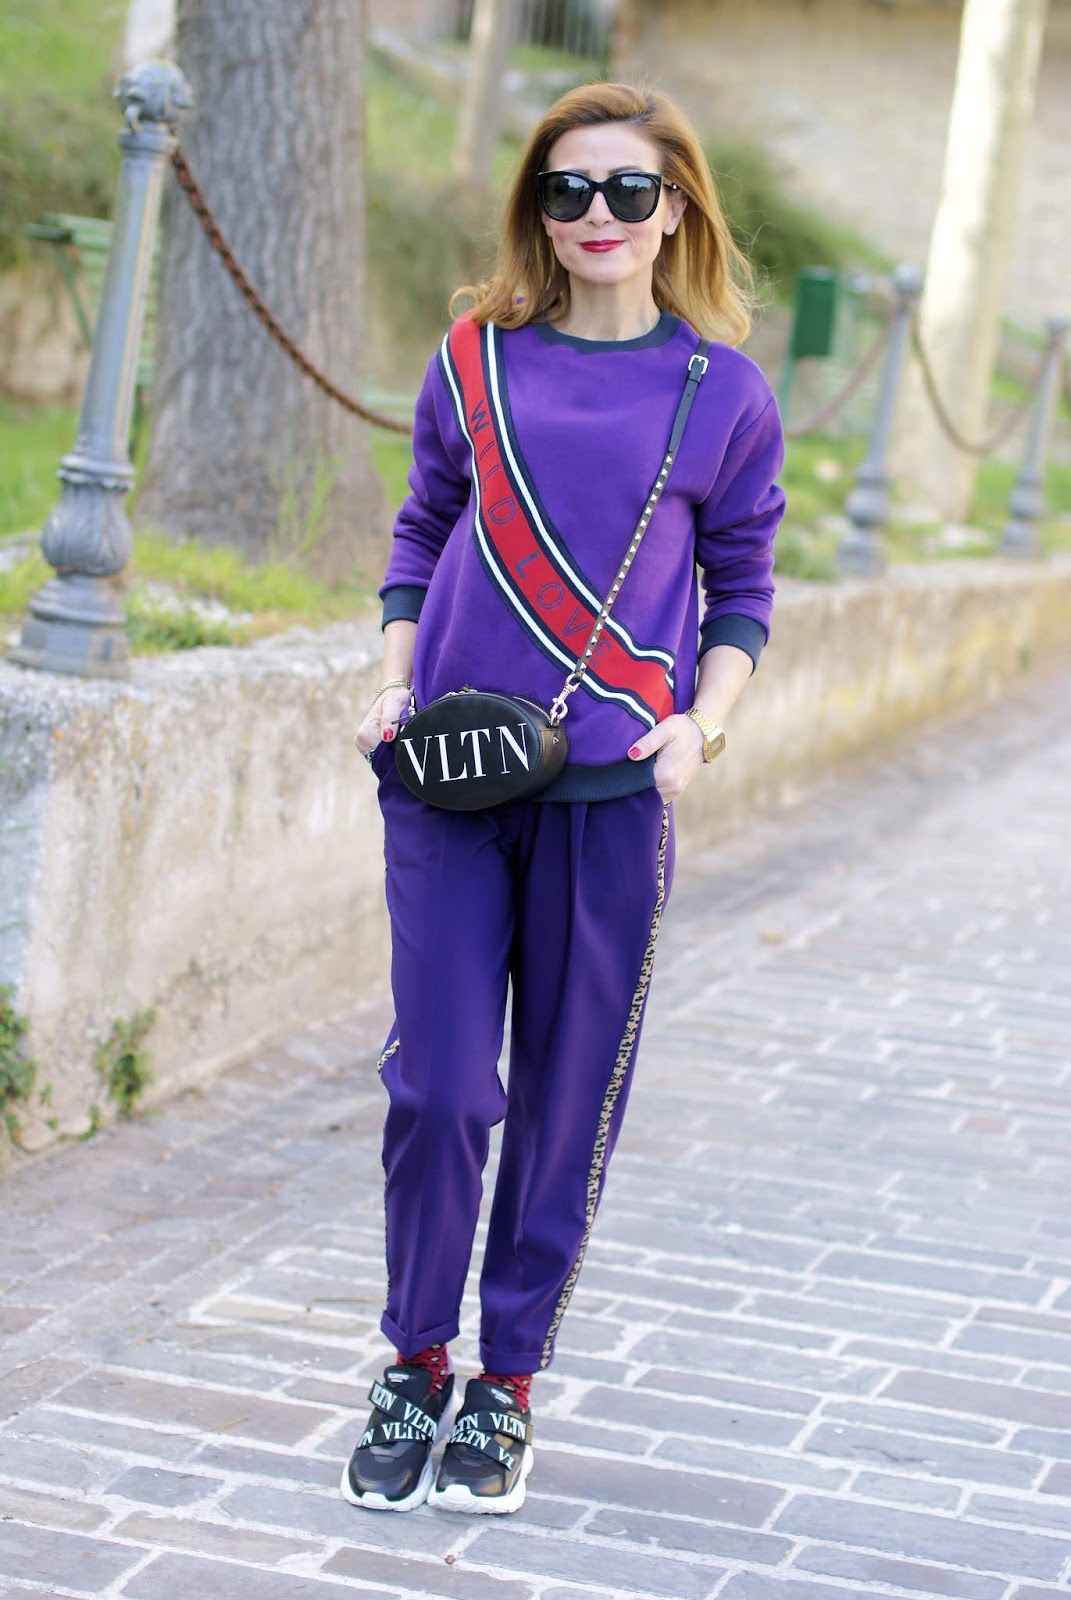 VLTN: the new Valentino logo in a sporty chic outfit on Fashion and Cookies fashion blog, fashion blogger style